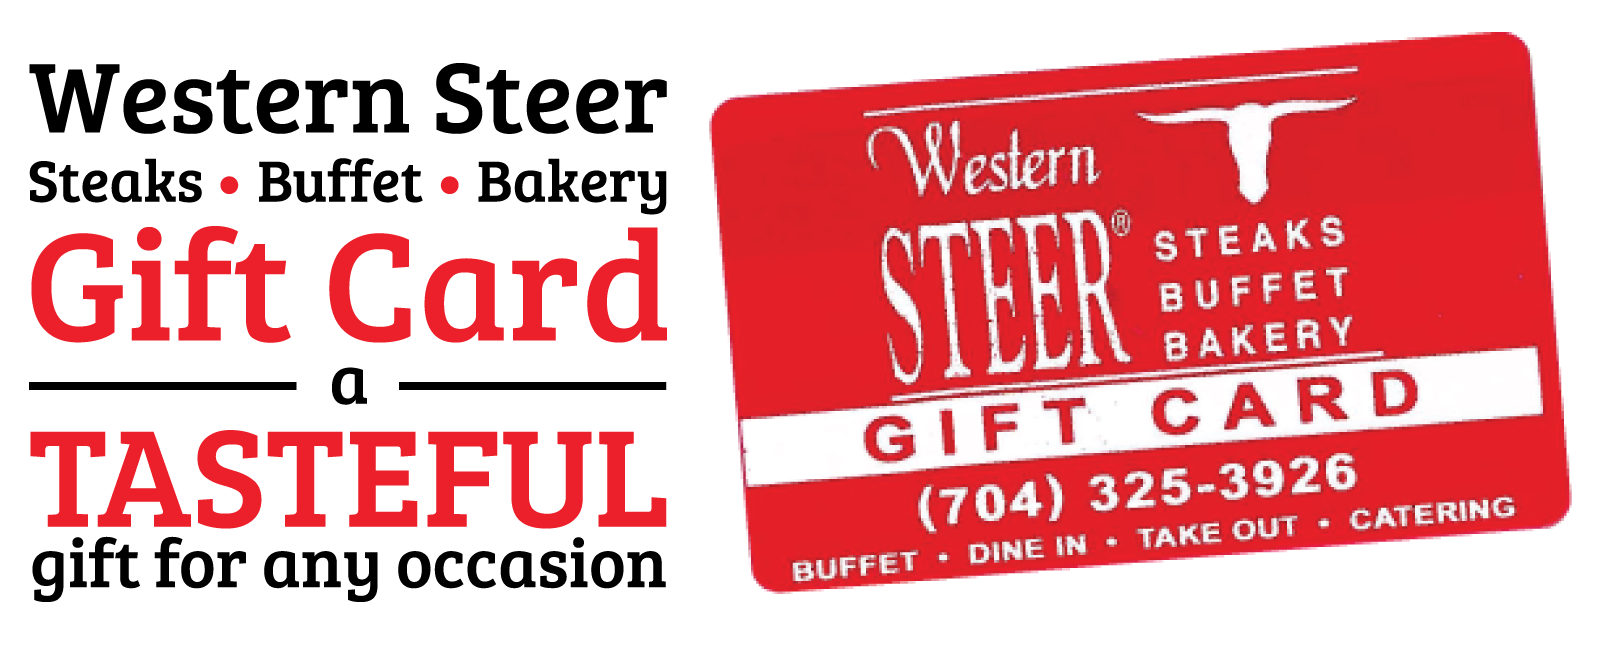 Western Steer, Steaks, Buffet, Bakery, Gift card, A tasteful gift for any occasion